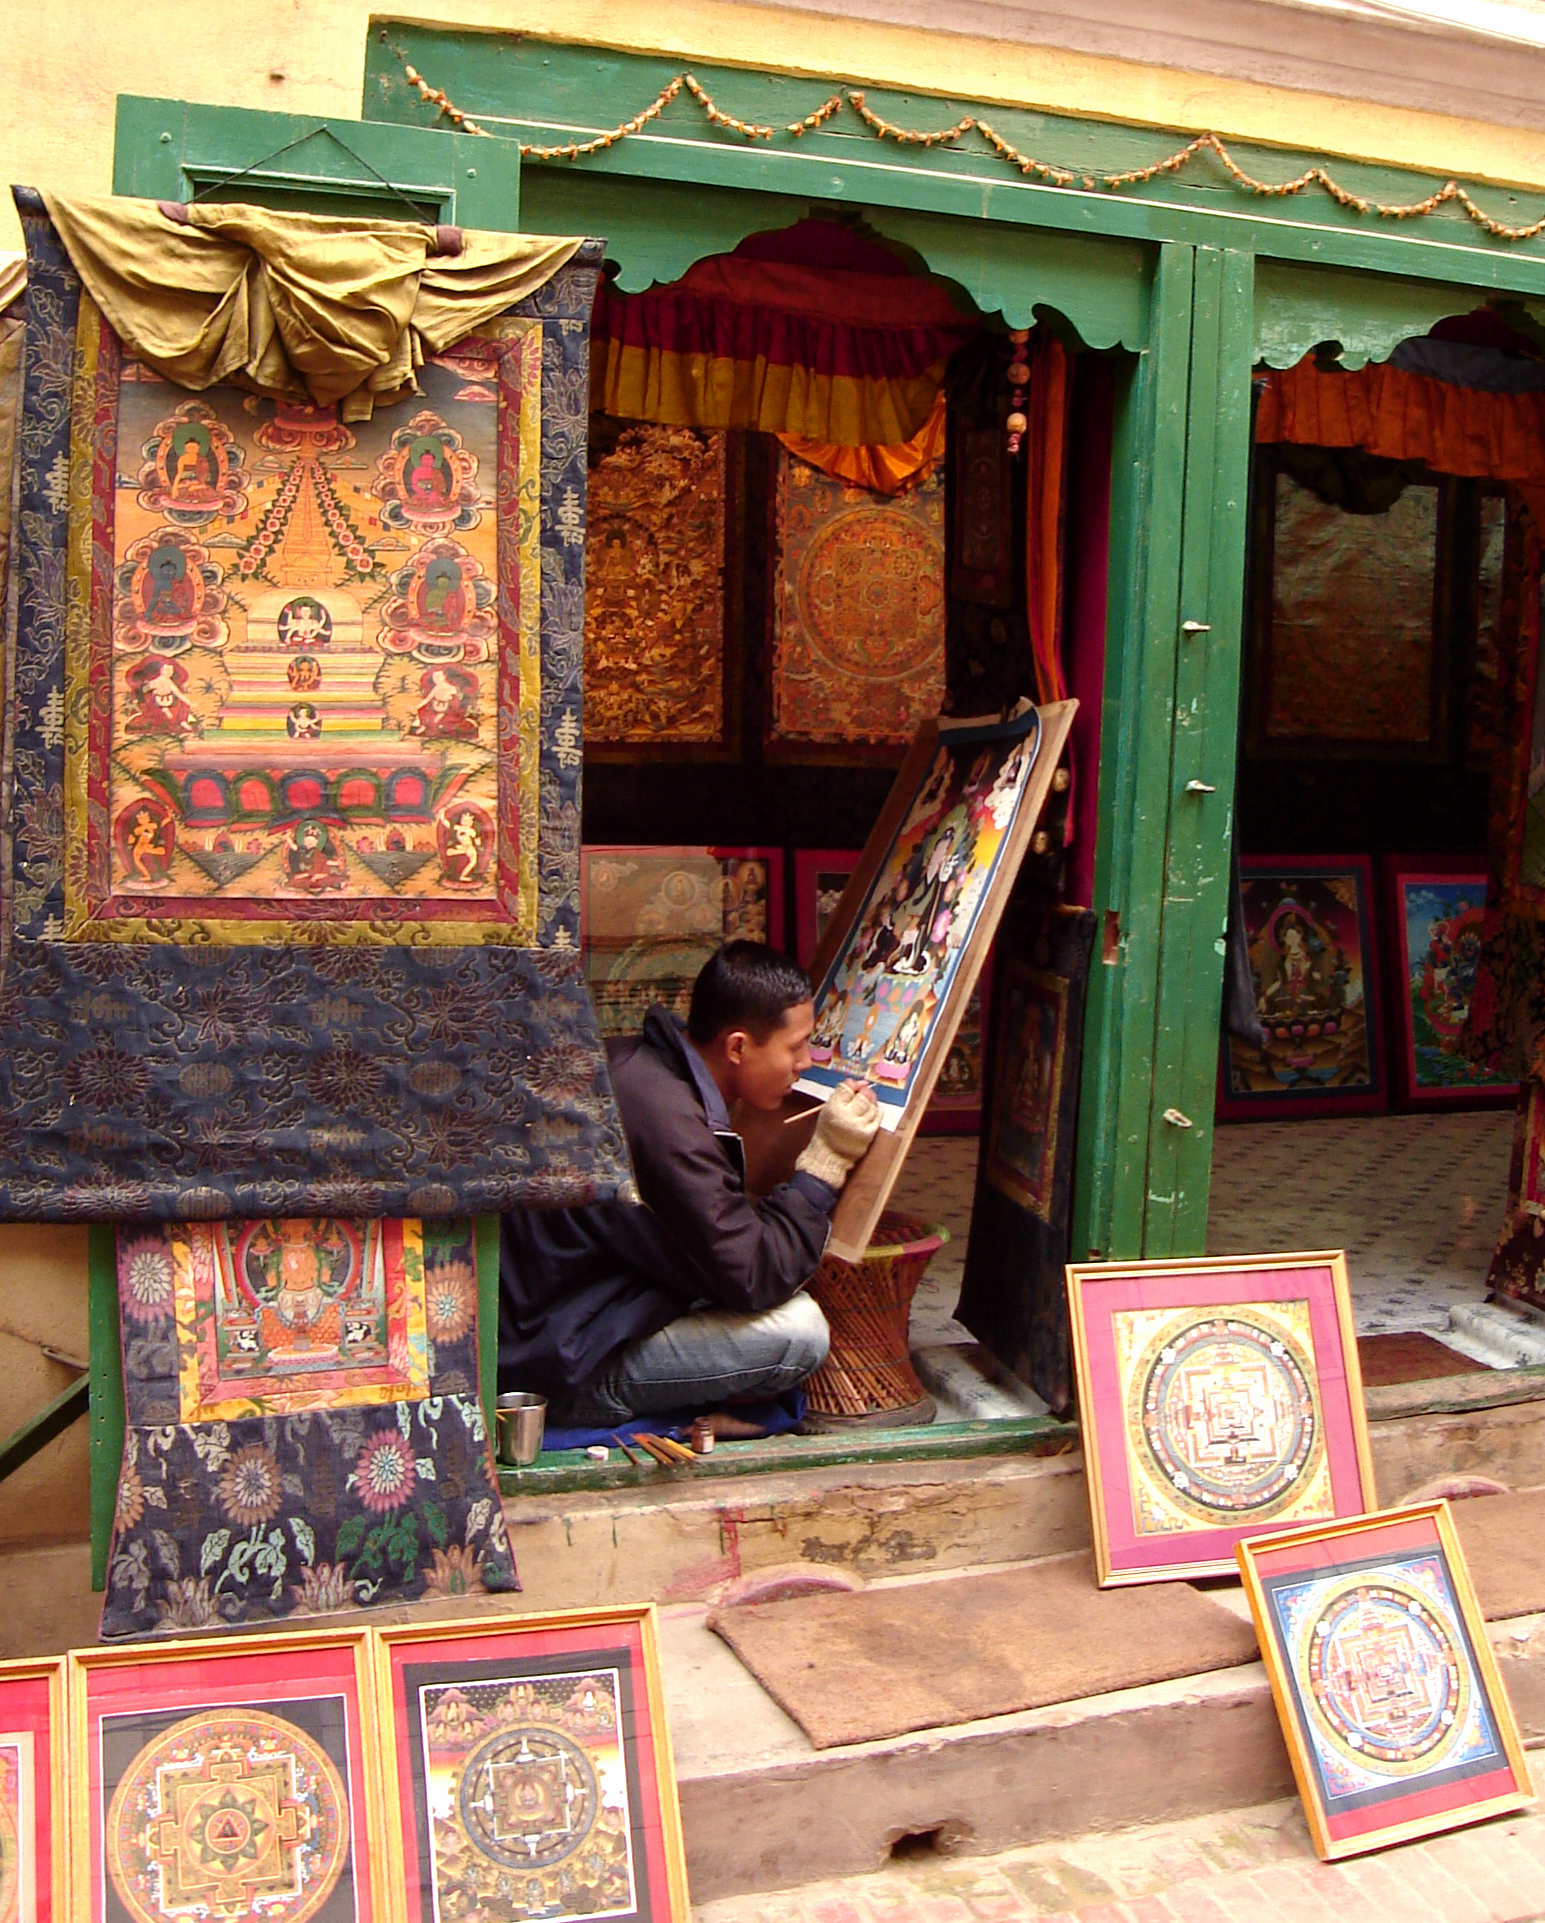 TIBETAN THANGKAS BEING PAINTED